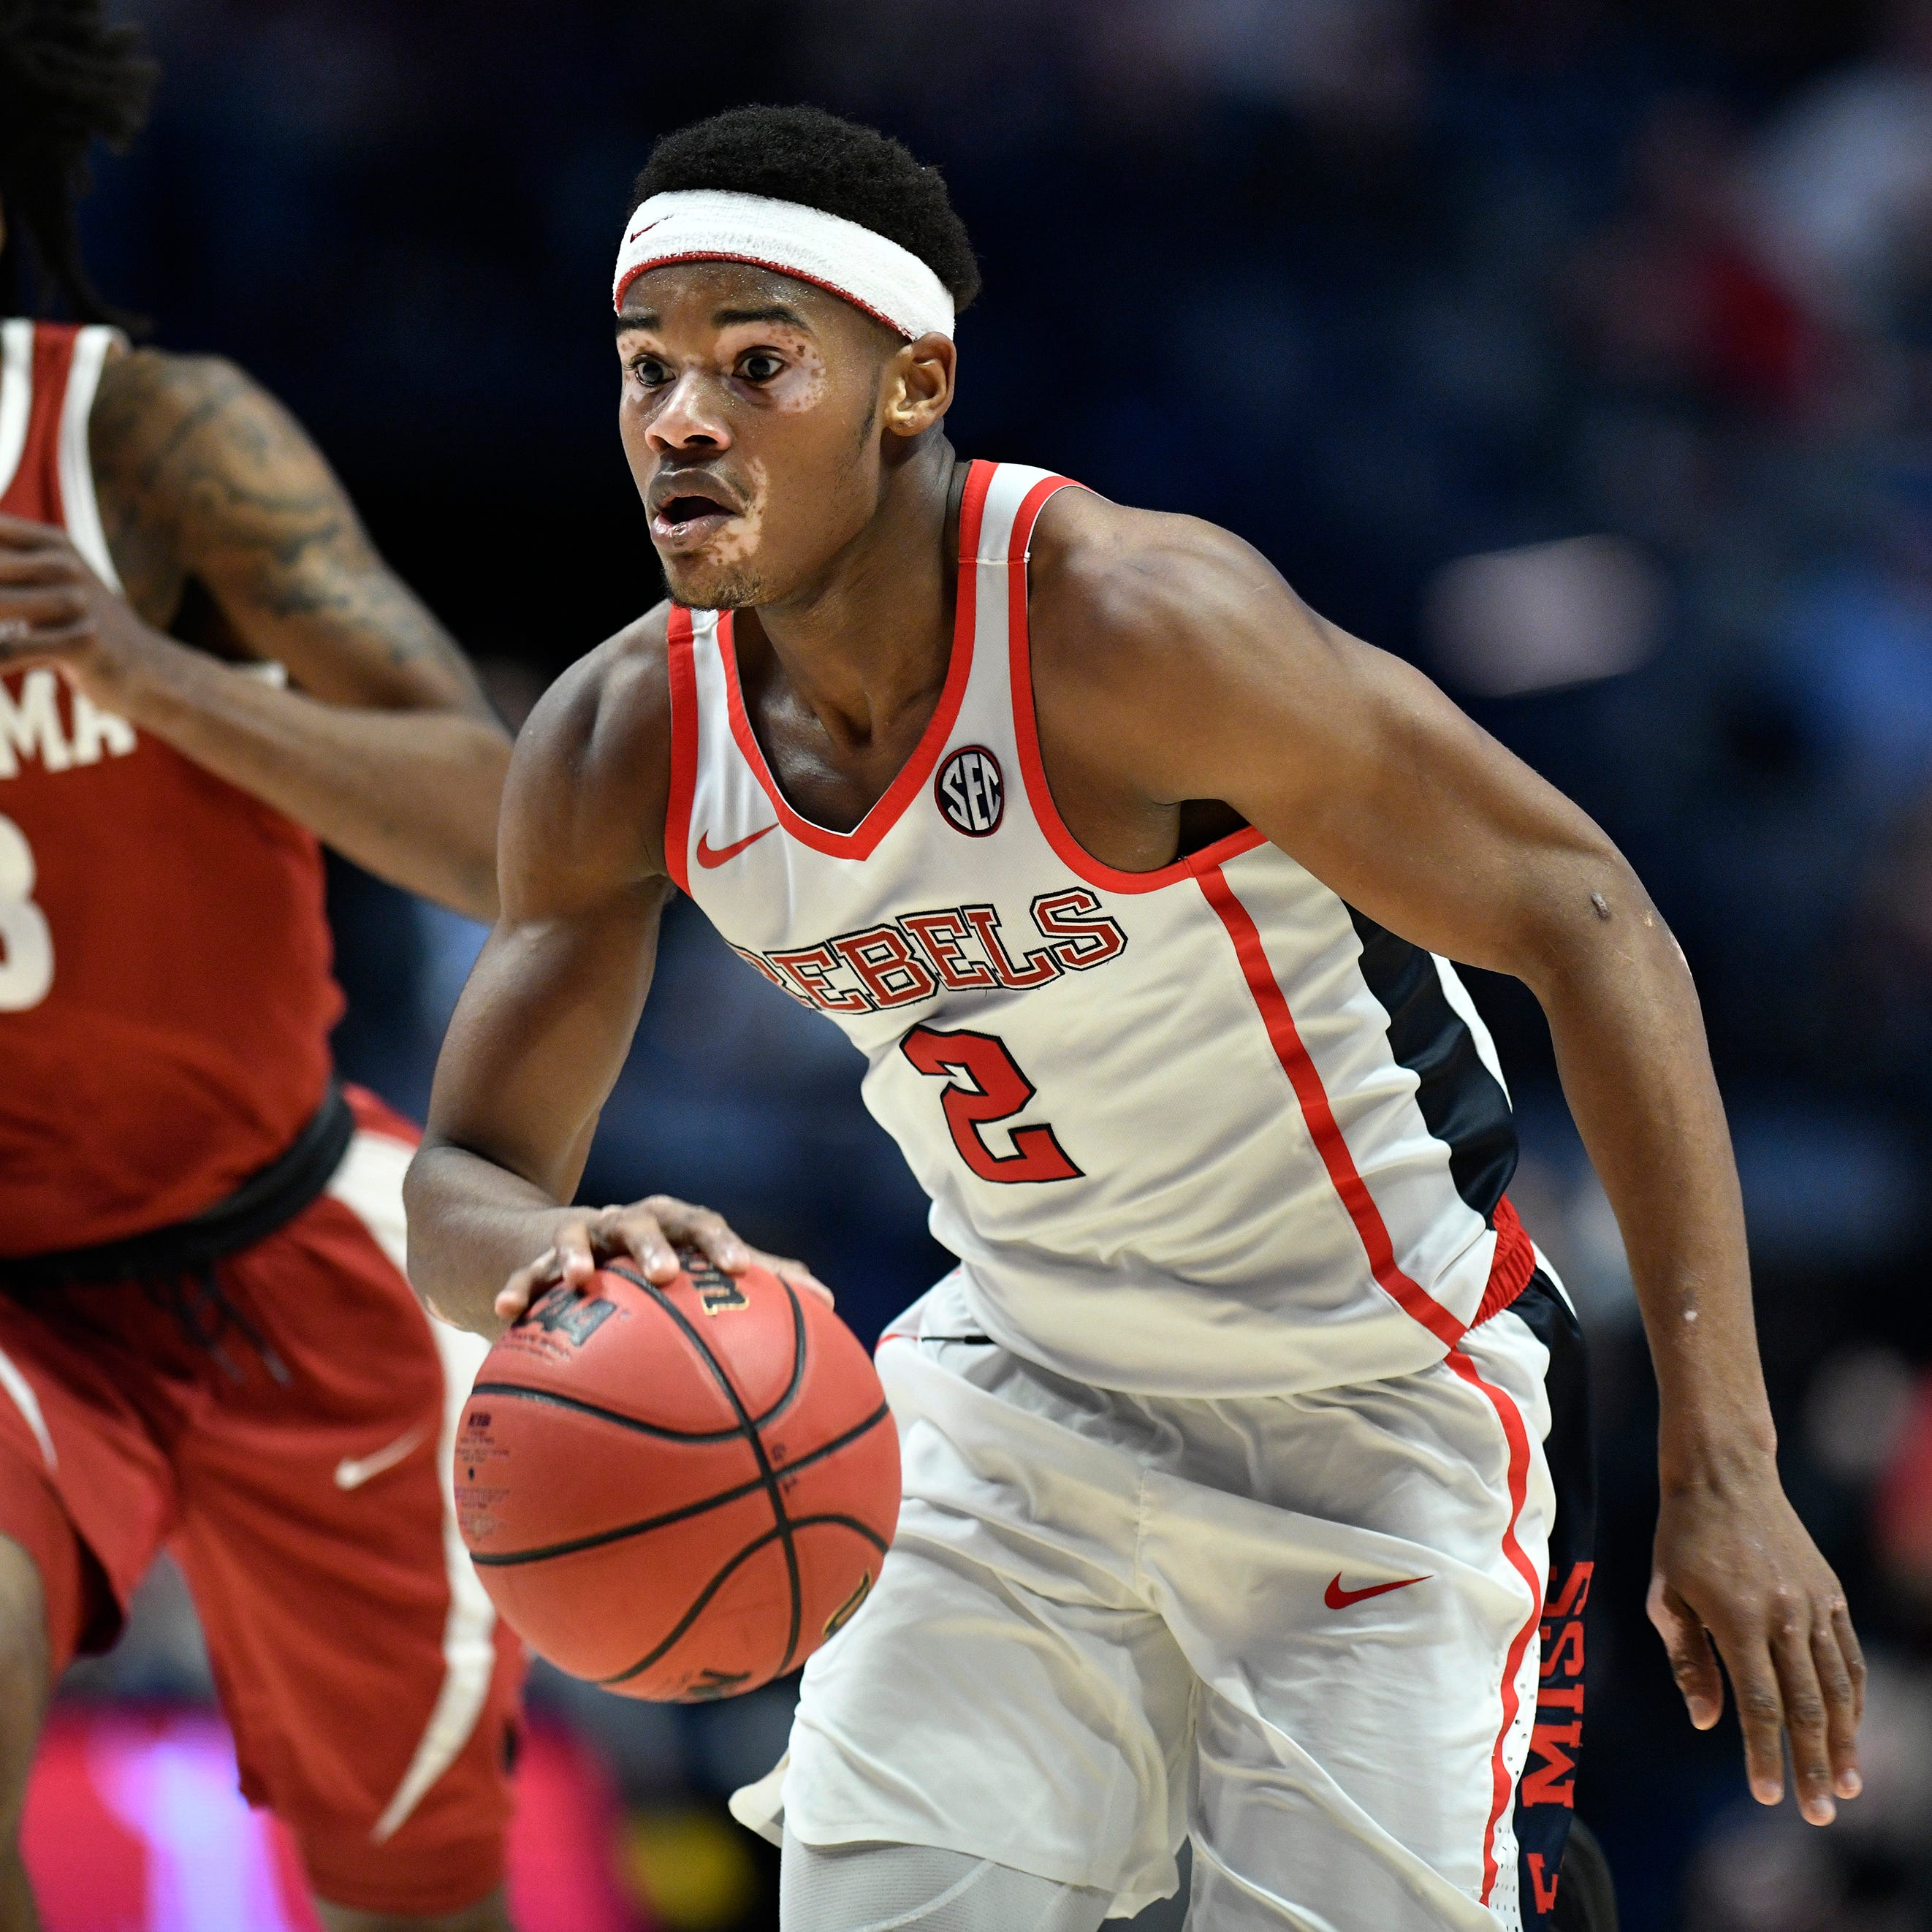 Ole Miss in the NCAA Tournament? Here's why the Rebels believe they're going dancing.